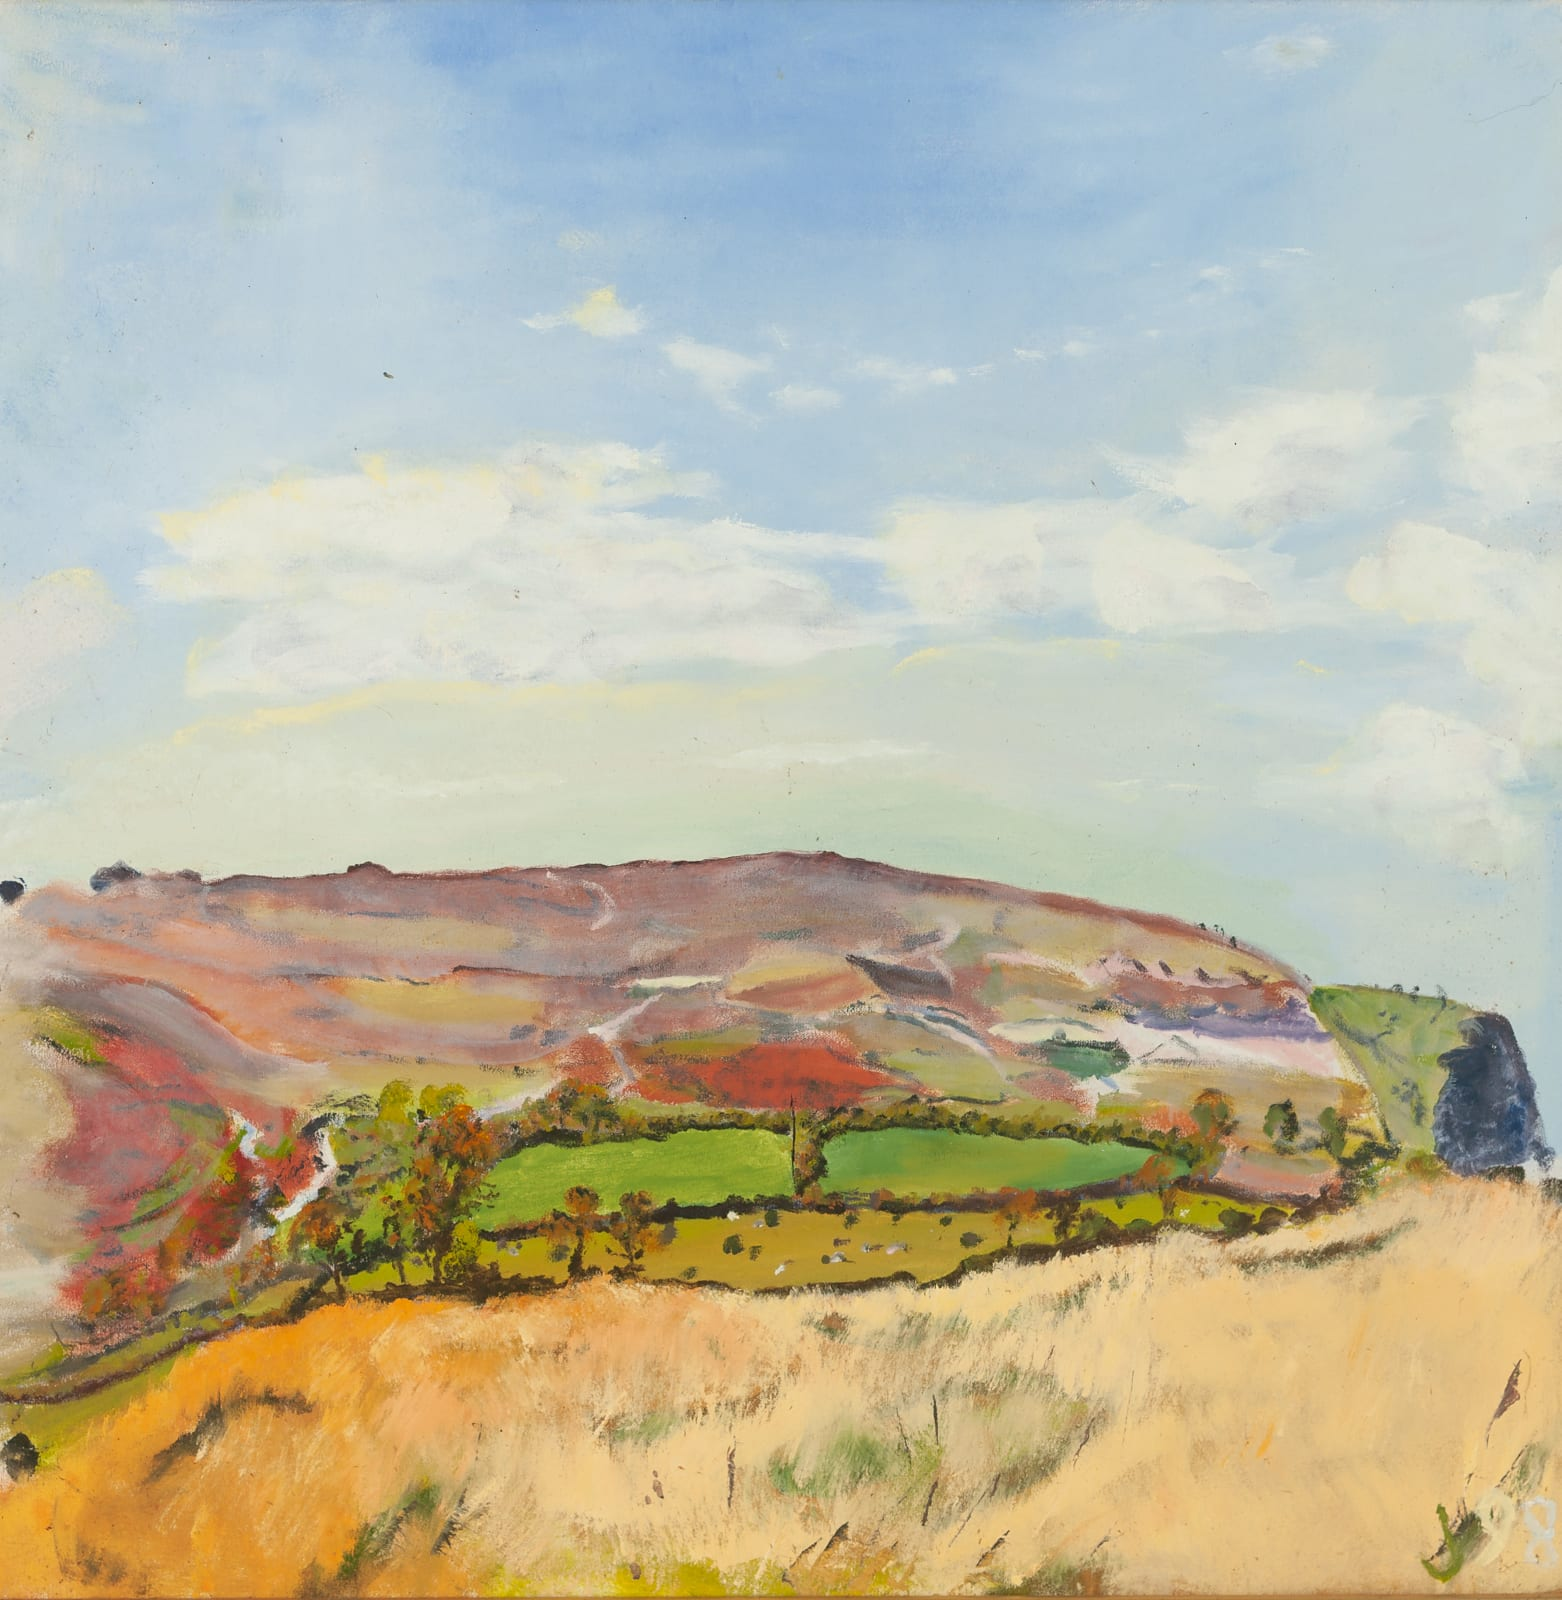 JEAN JONES, Untitled : View from Yellands, 1998